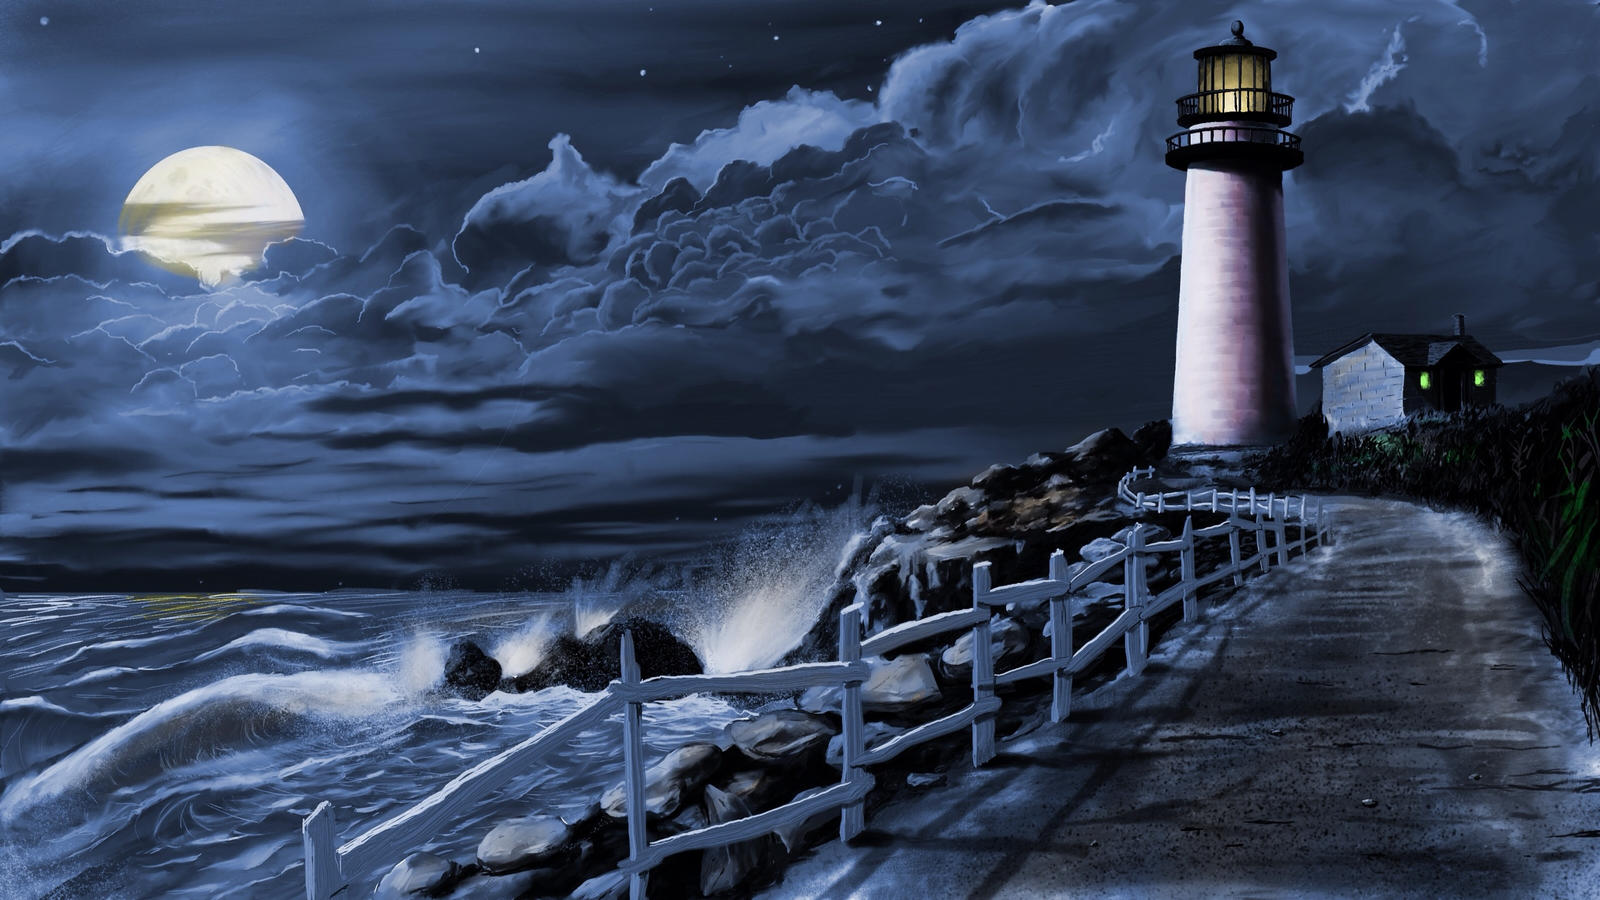 Lighthouse(night Time) By Brentdgrooms On DeviantArt